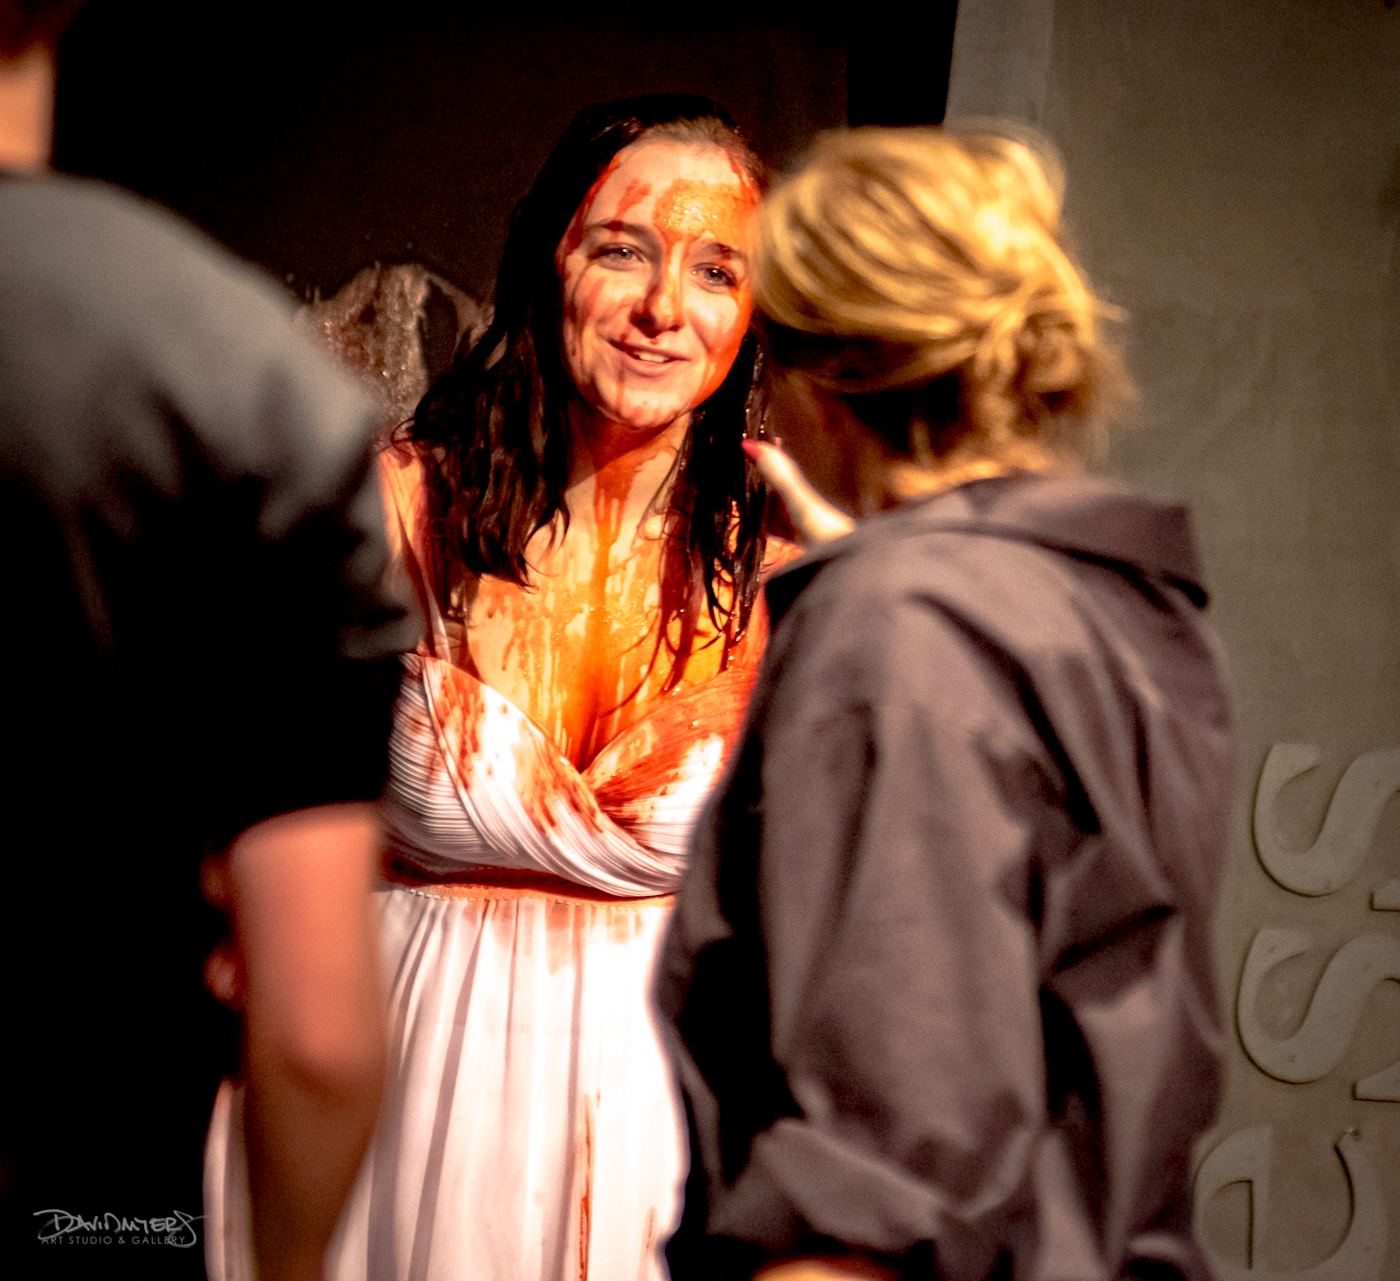 technician covers Carrie in blood